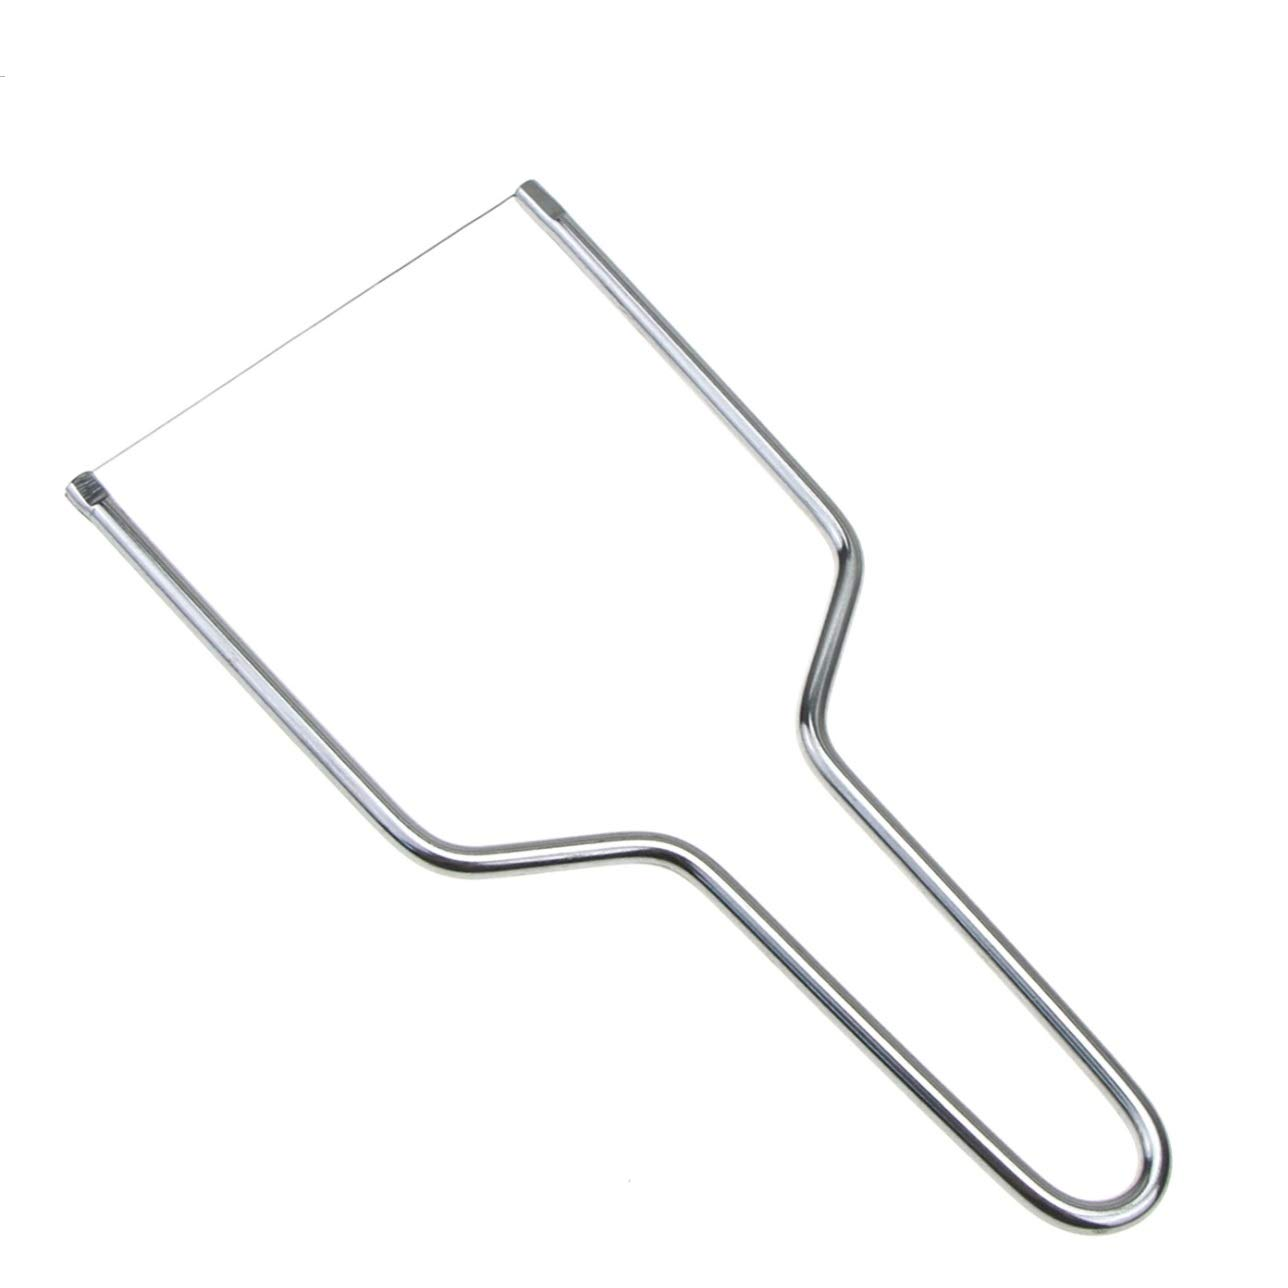 ZXT-parts Cheese Slicer, Stainless Steel Cheese Slicers with Wire, Handheld Butter Cutter Tools for Soft Hard Block Cheese, Kitchen Tools Knives. by ZXT-parts